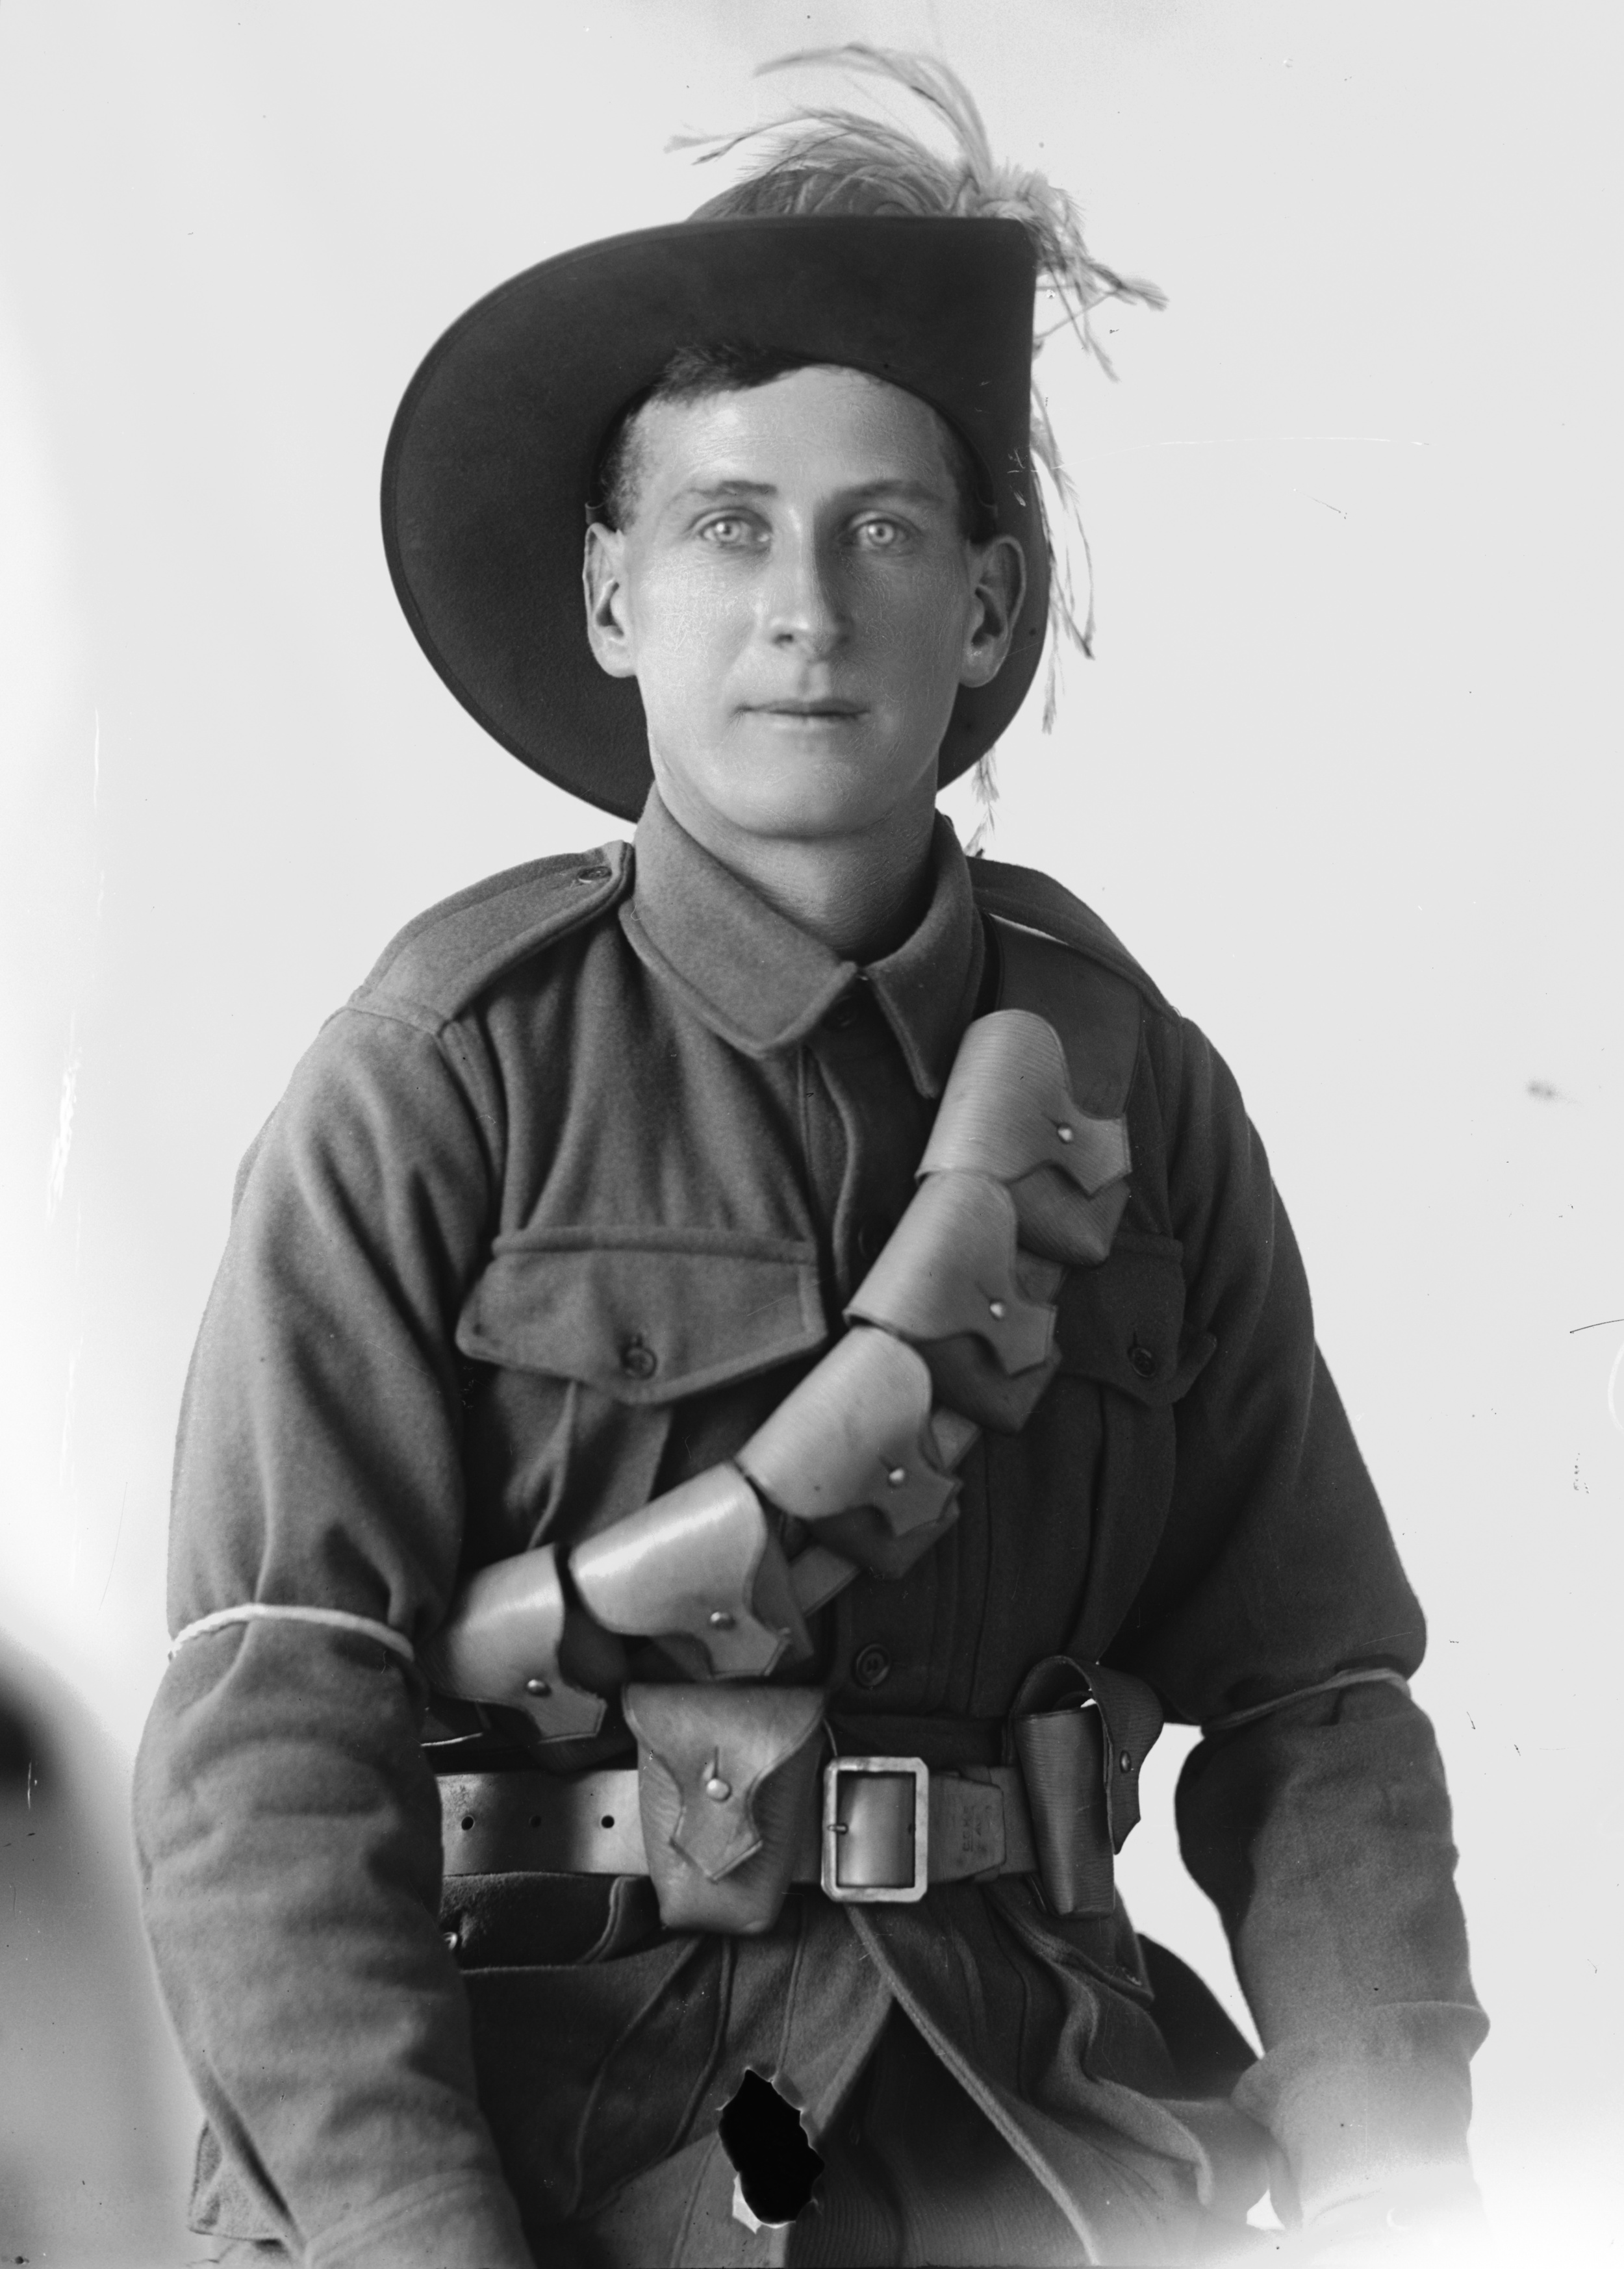 Photographed at the Dease Studio, 117 Barrack Street Perth WA Image courtesy of the State Library of Western Australia: 108167PD